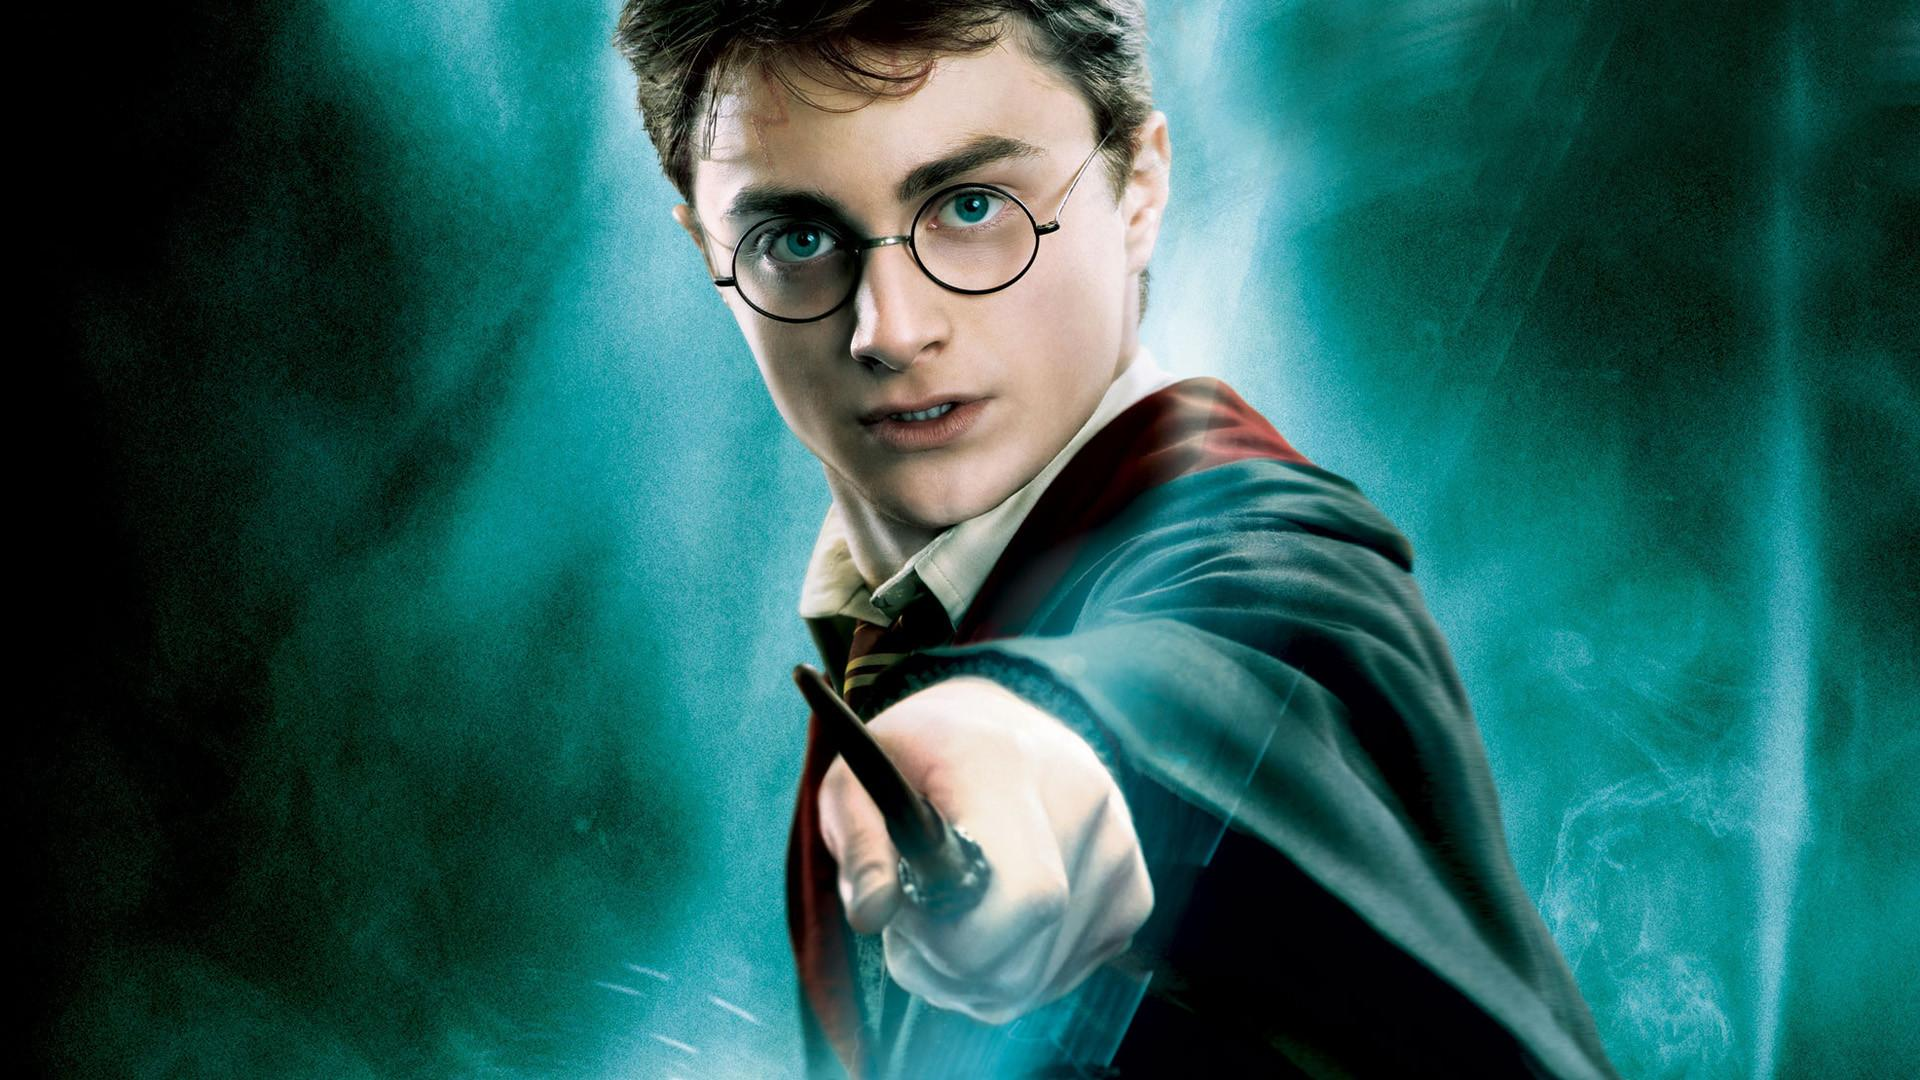 Harry Potter on Steroids